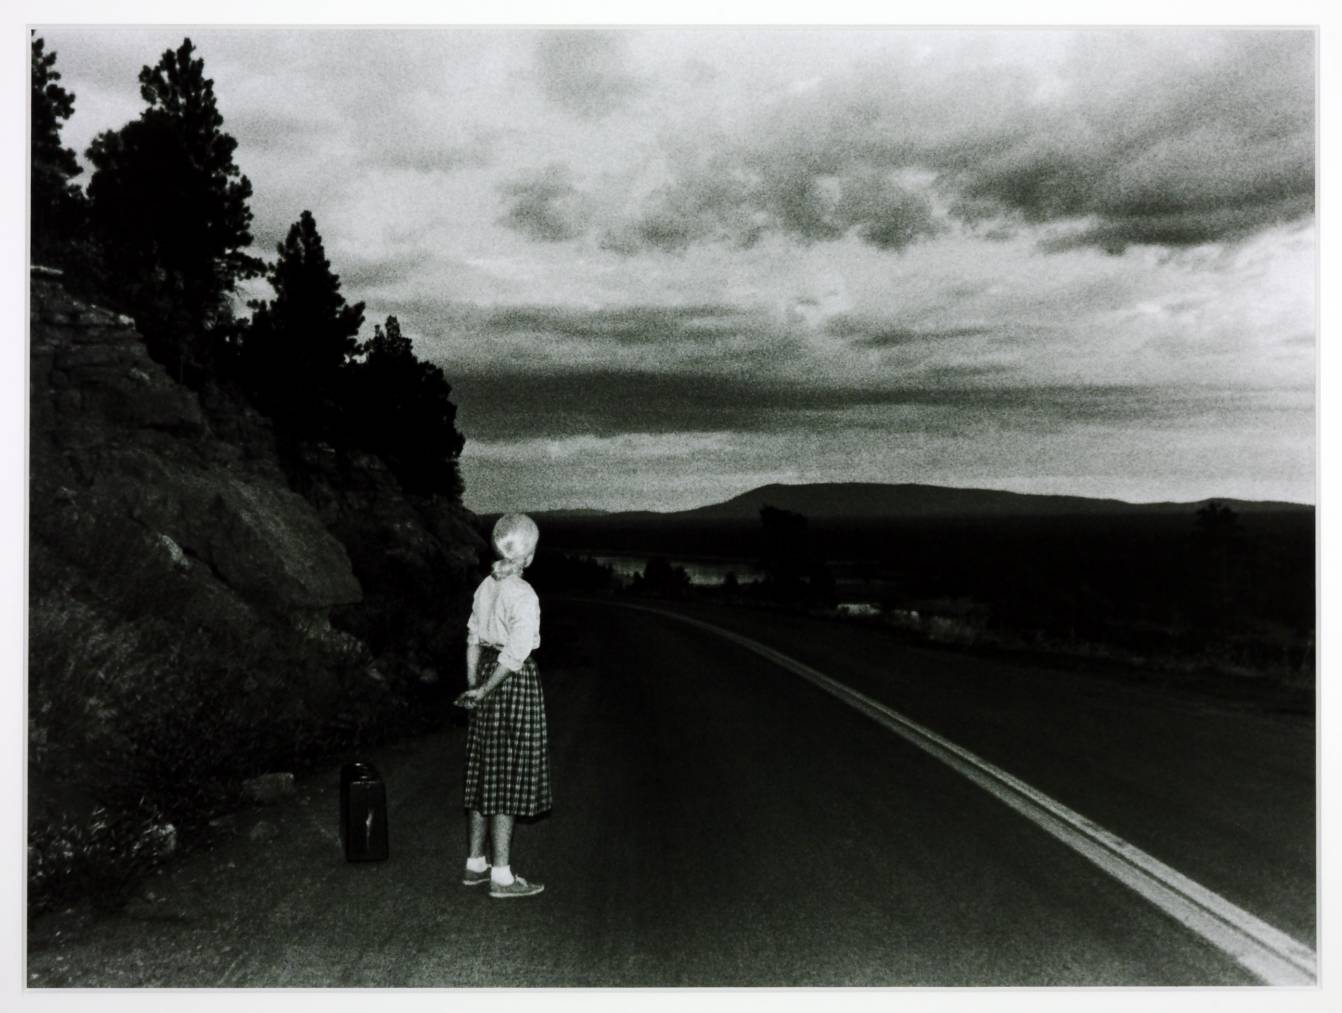 Cindy Sherman, Untitled Film Still #48, 1979, reprinted 1998, © Cindy Sherman